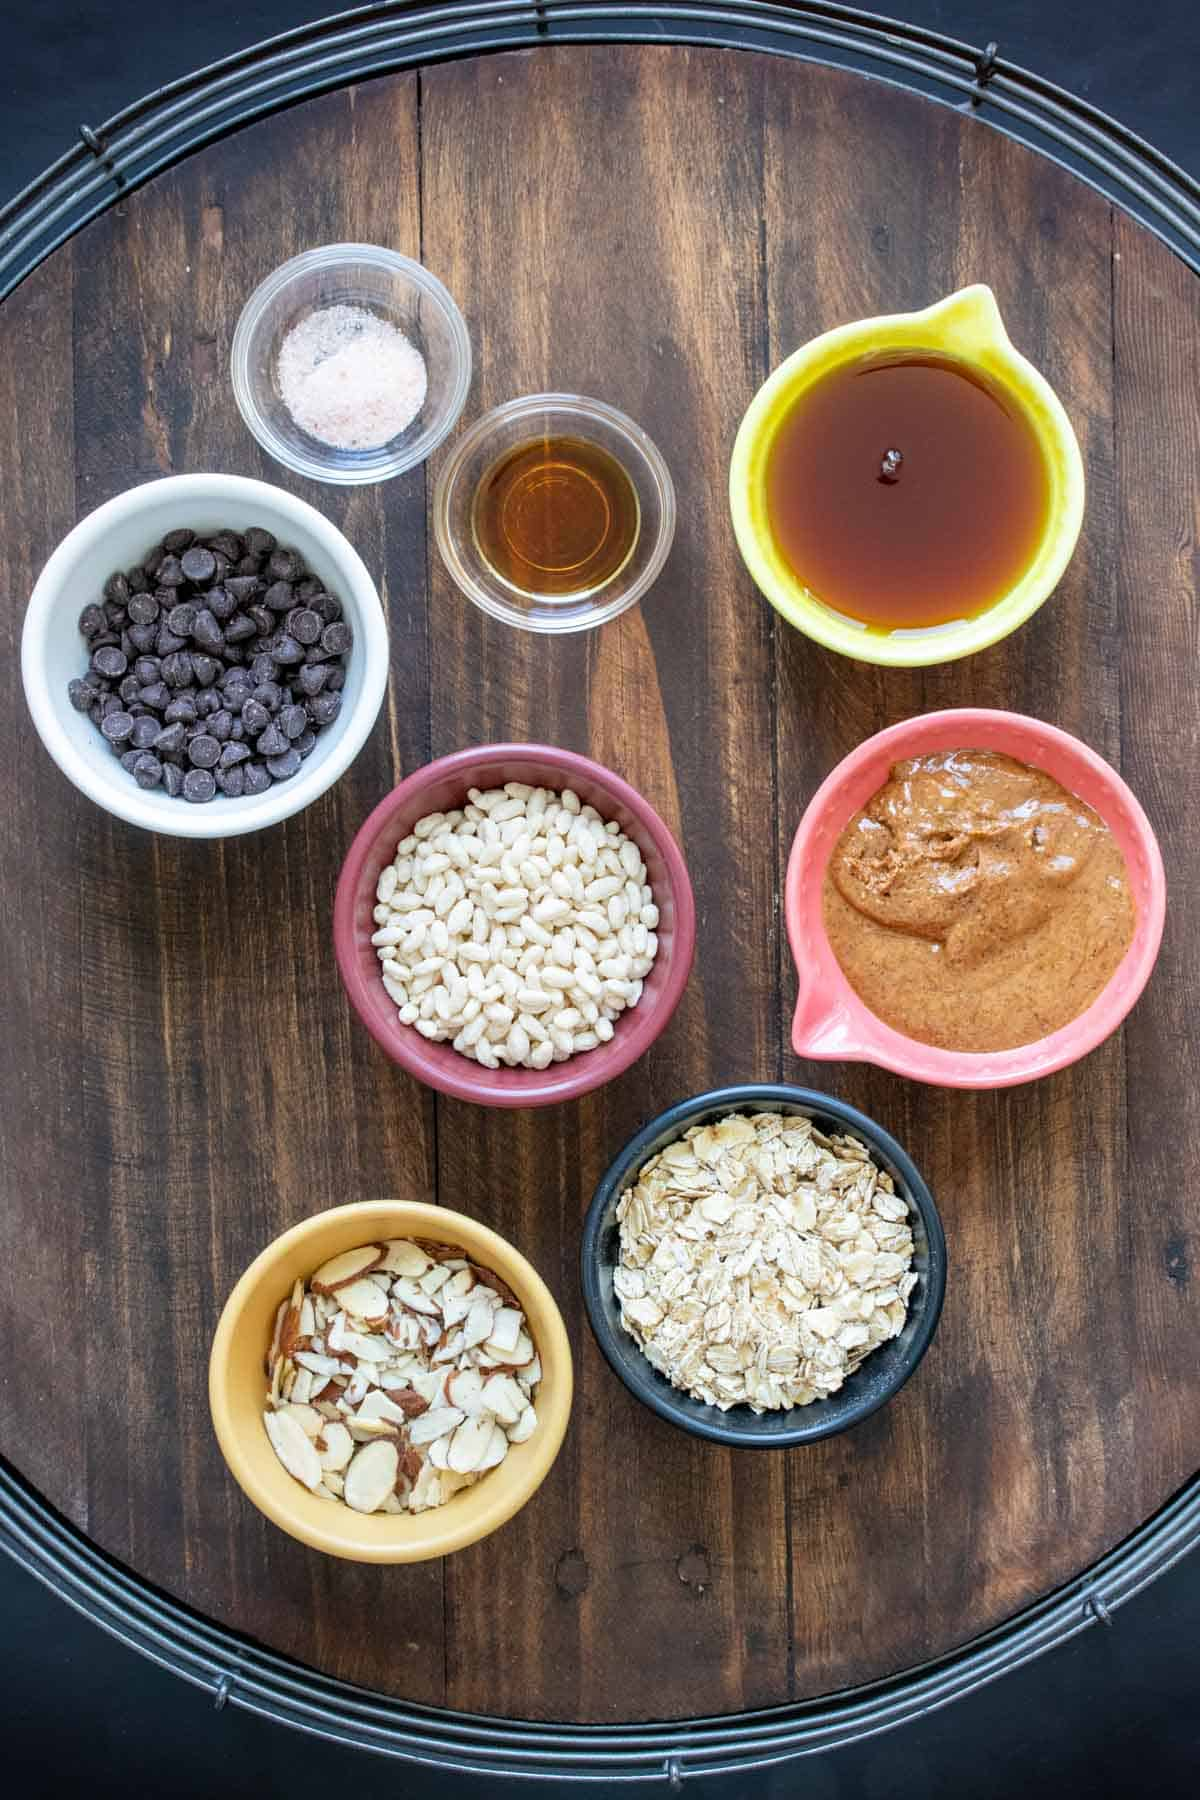 Bowls with ingredients needed to make homemade granola bars